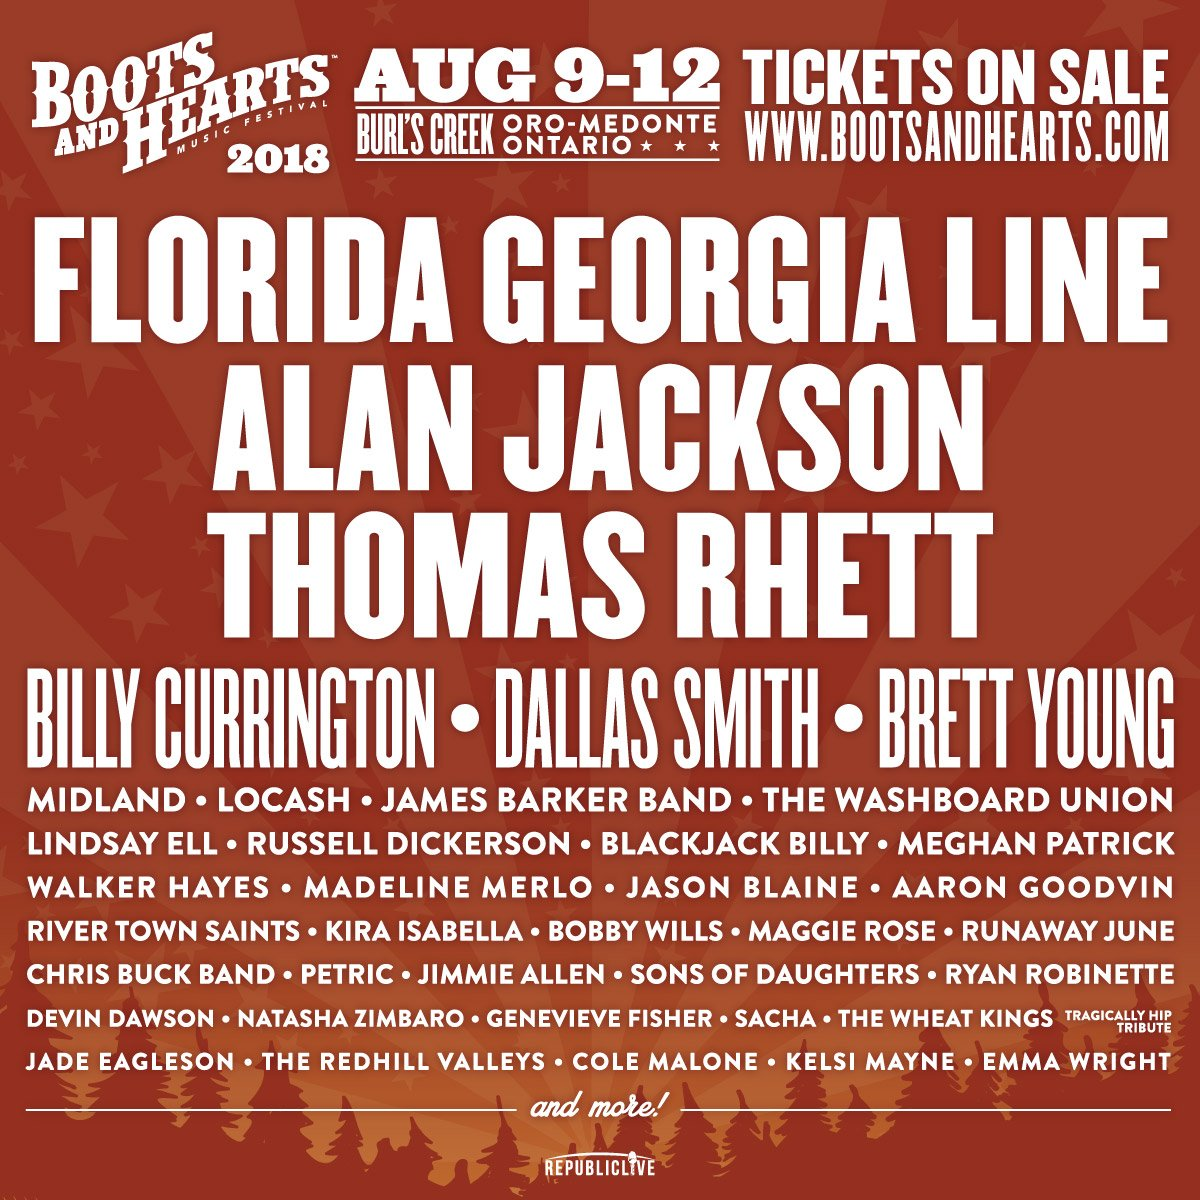 PHOTO: The 2018 Boots & Hearts Lineup